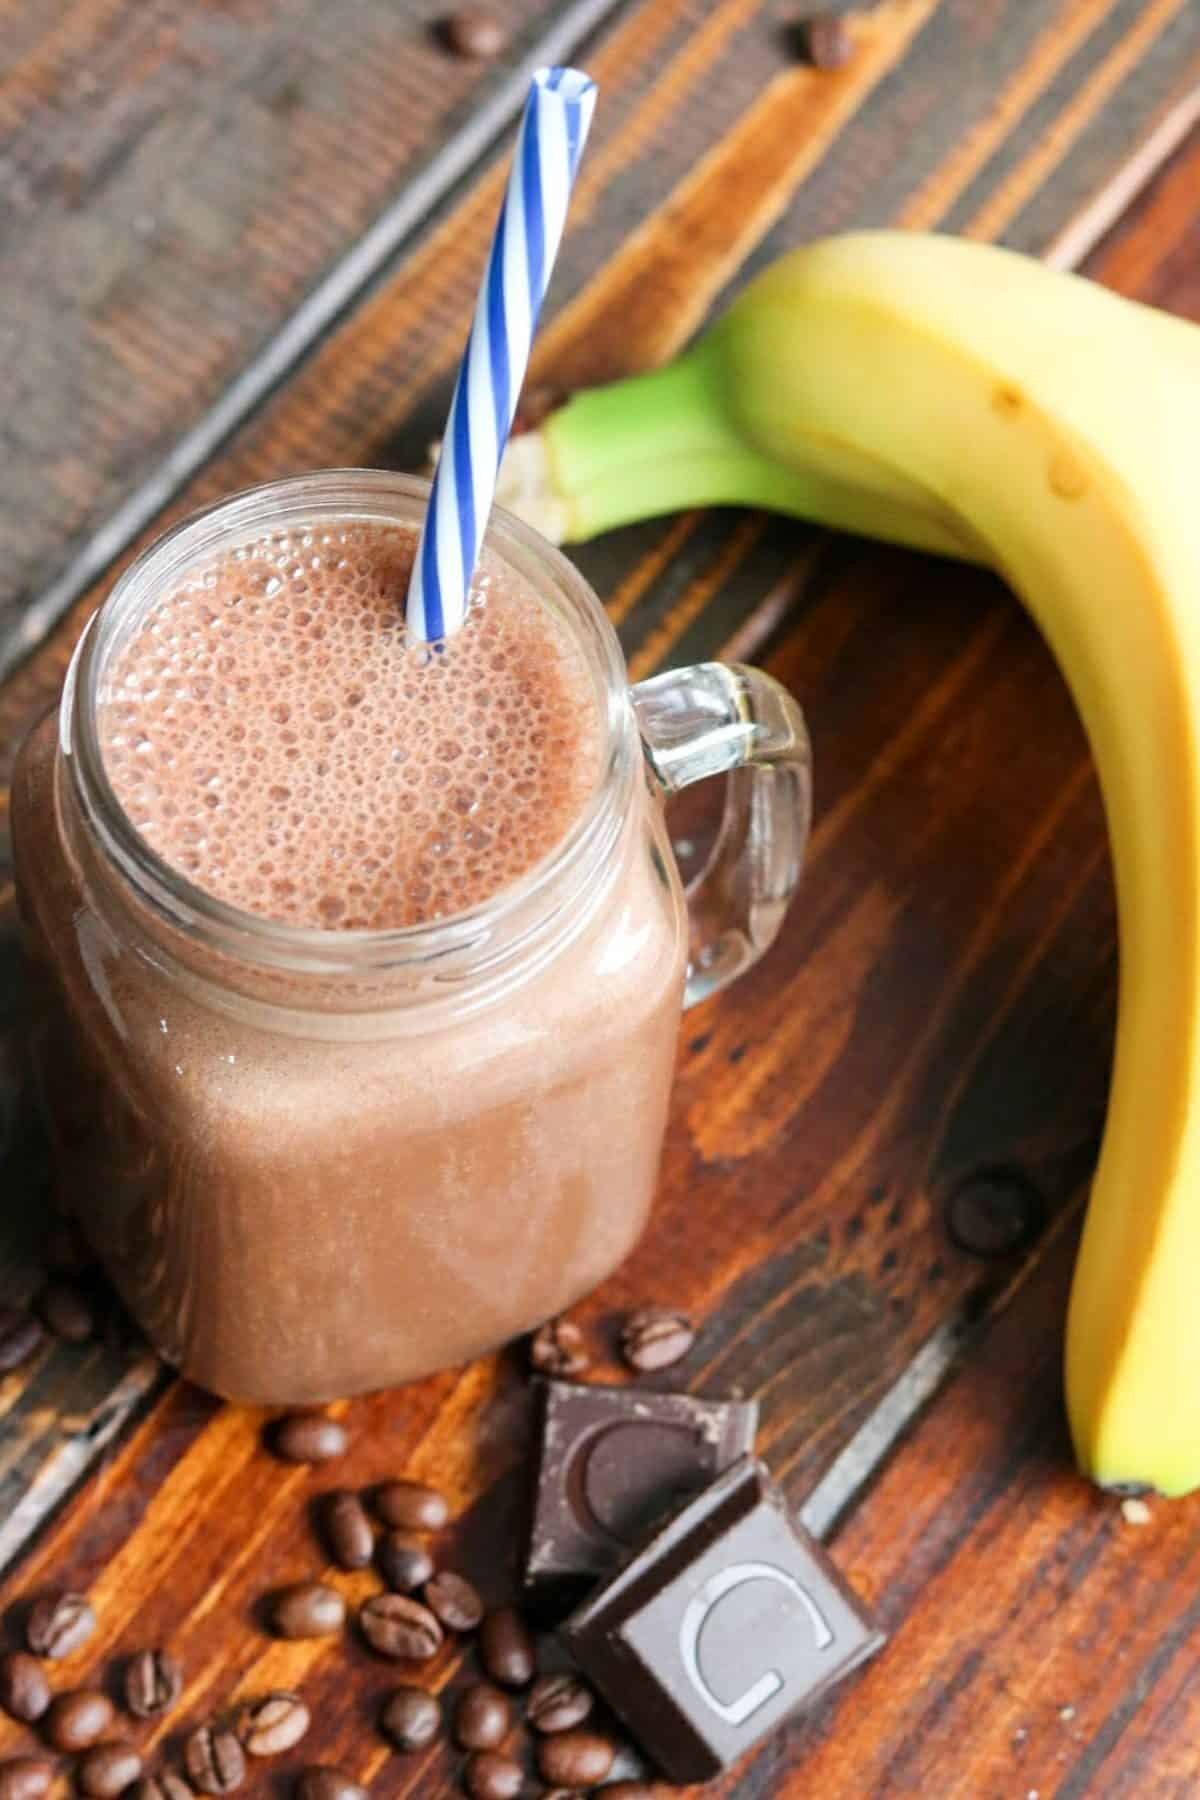 coffee smoothie with a banana and chocolate